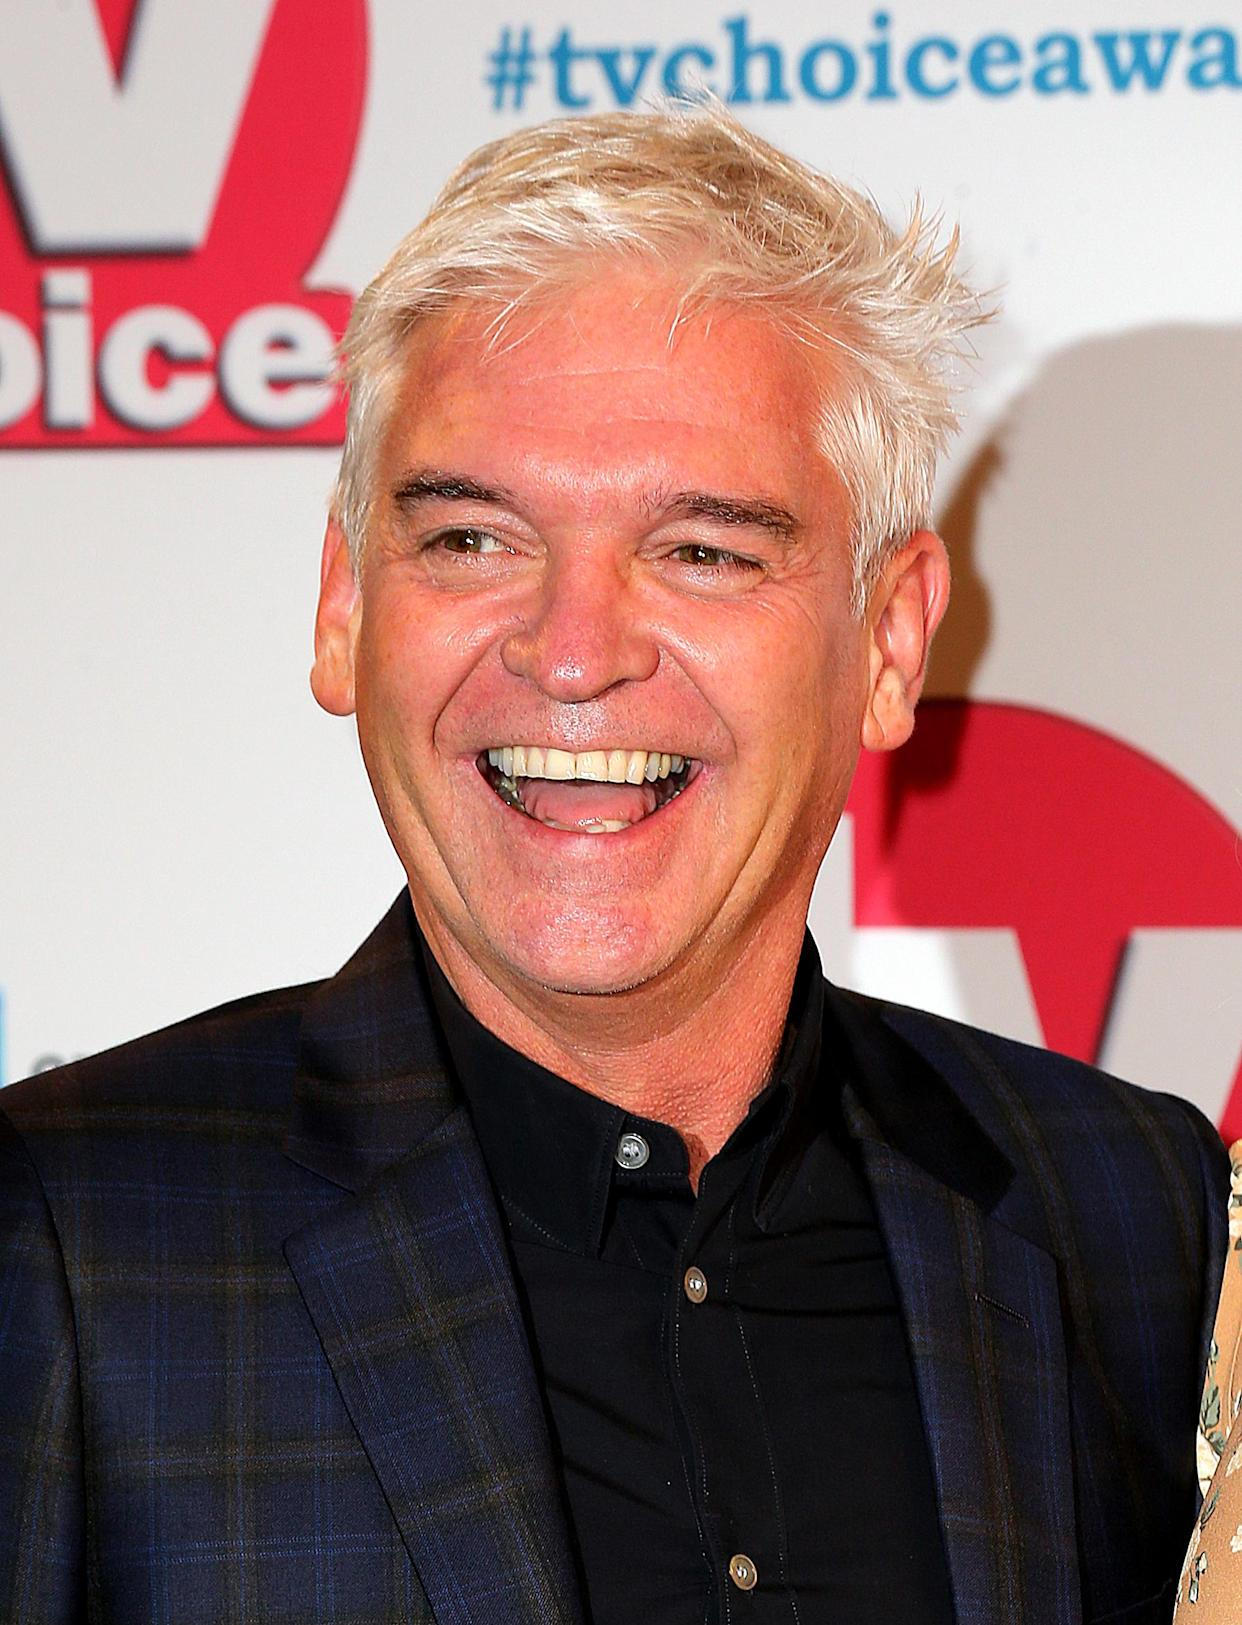 Phillip Schofield attending the TV Choice Awards held at the Hilton Hotel, Park Lane, London